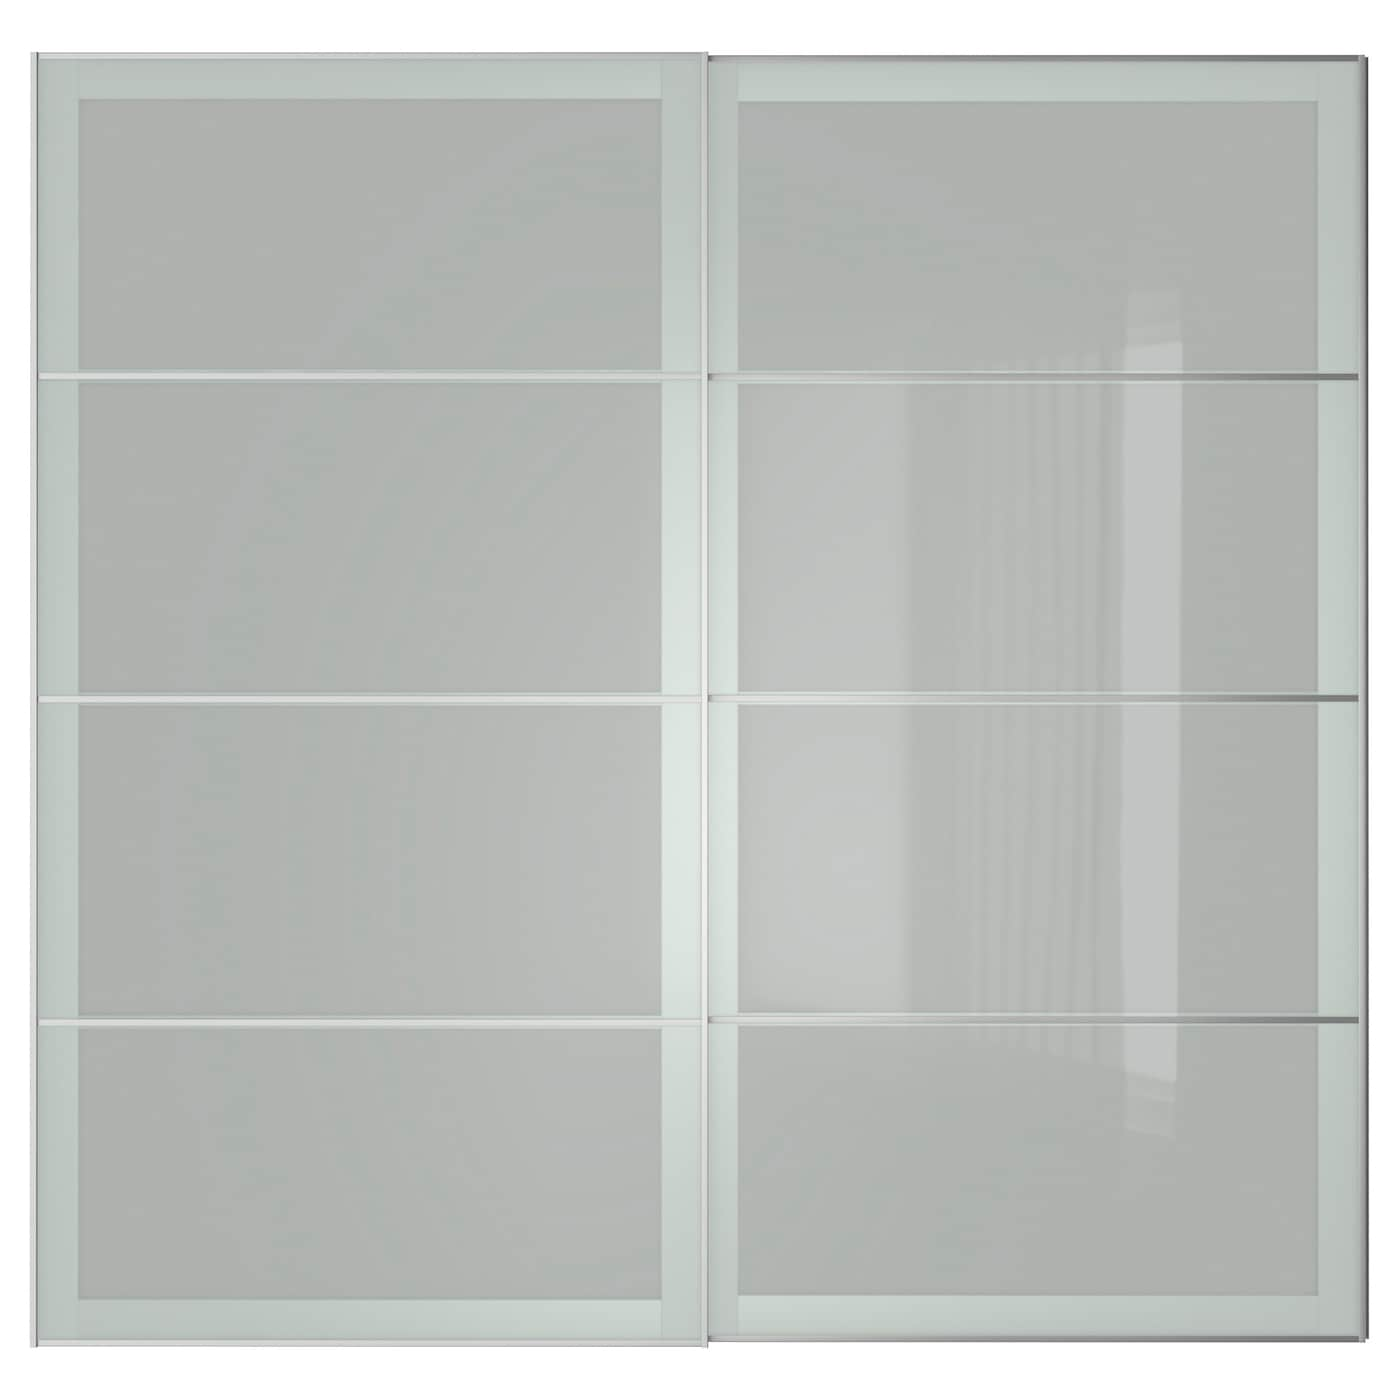 sekken pair of sliding doors frosted glass 200x201 cm ikea. Black Bedroom Furniture Sets. Home Design Ideas